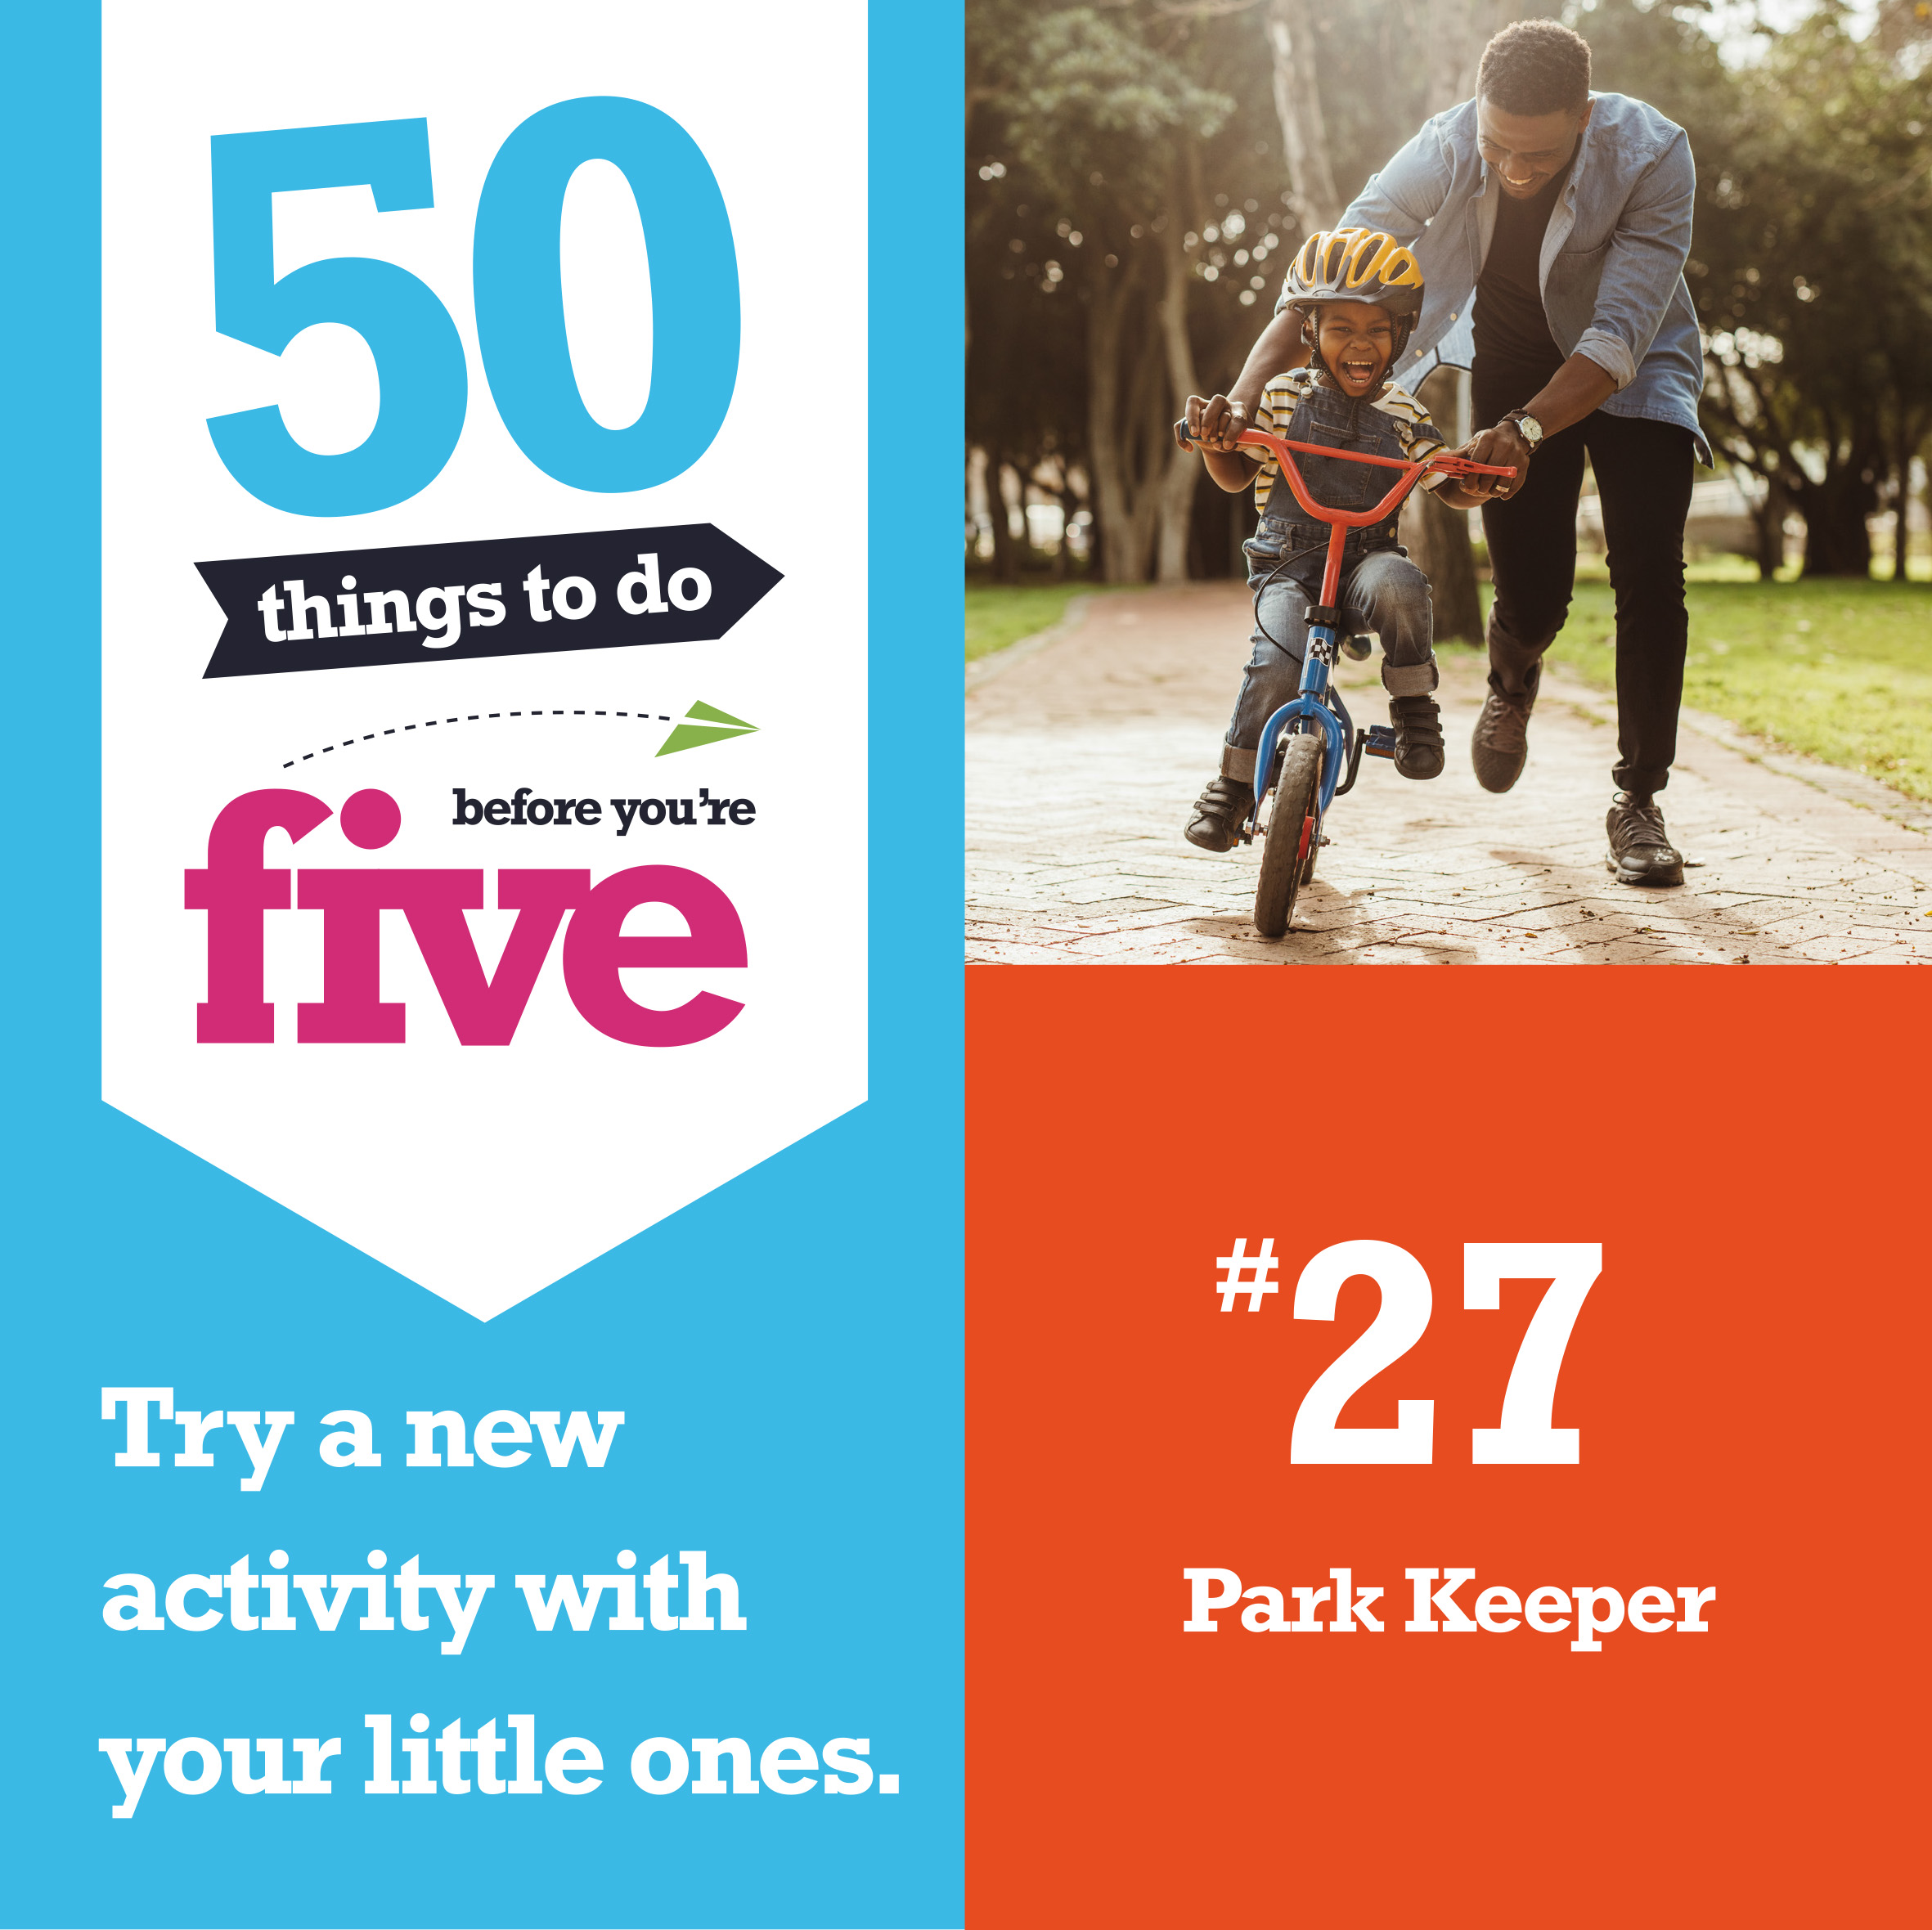 Logo for 50 Things to do before you're 5, number 27 Little People Park Keeper